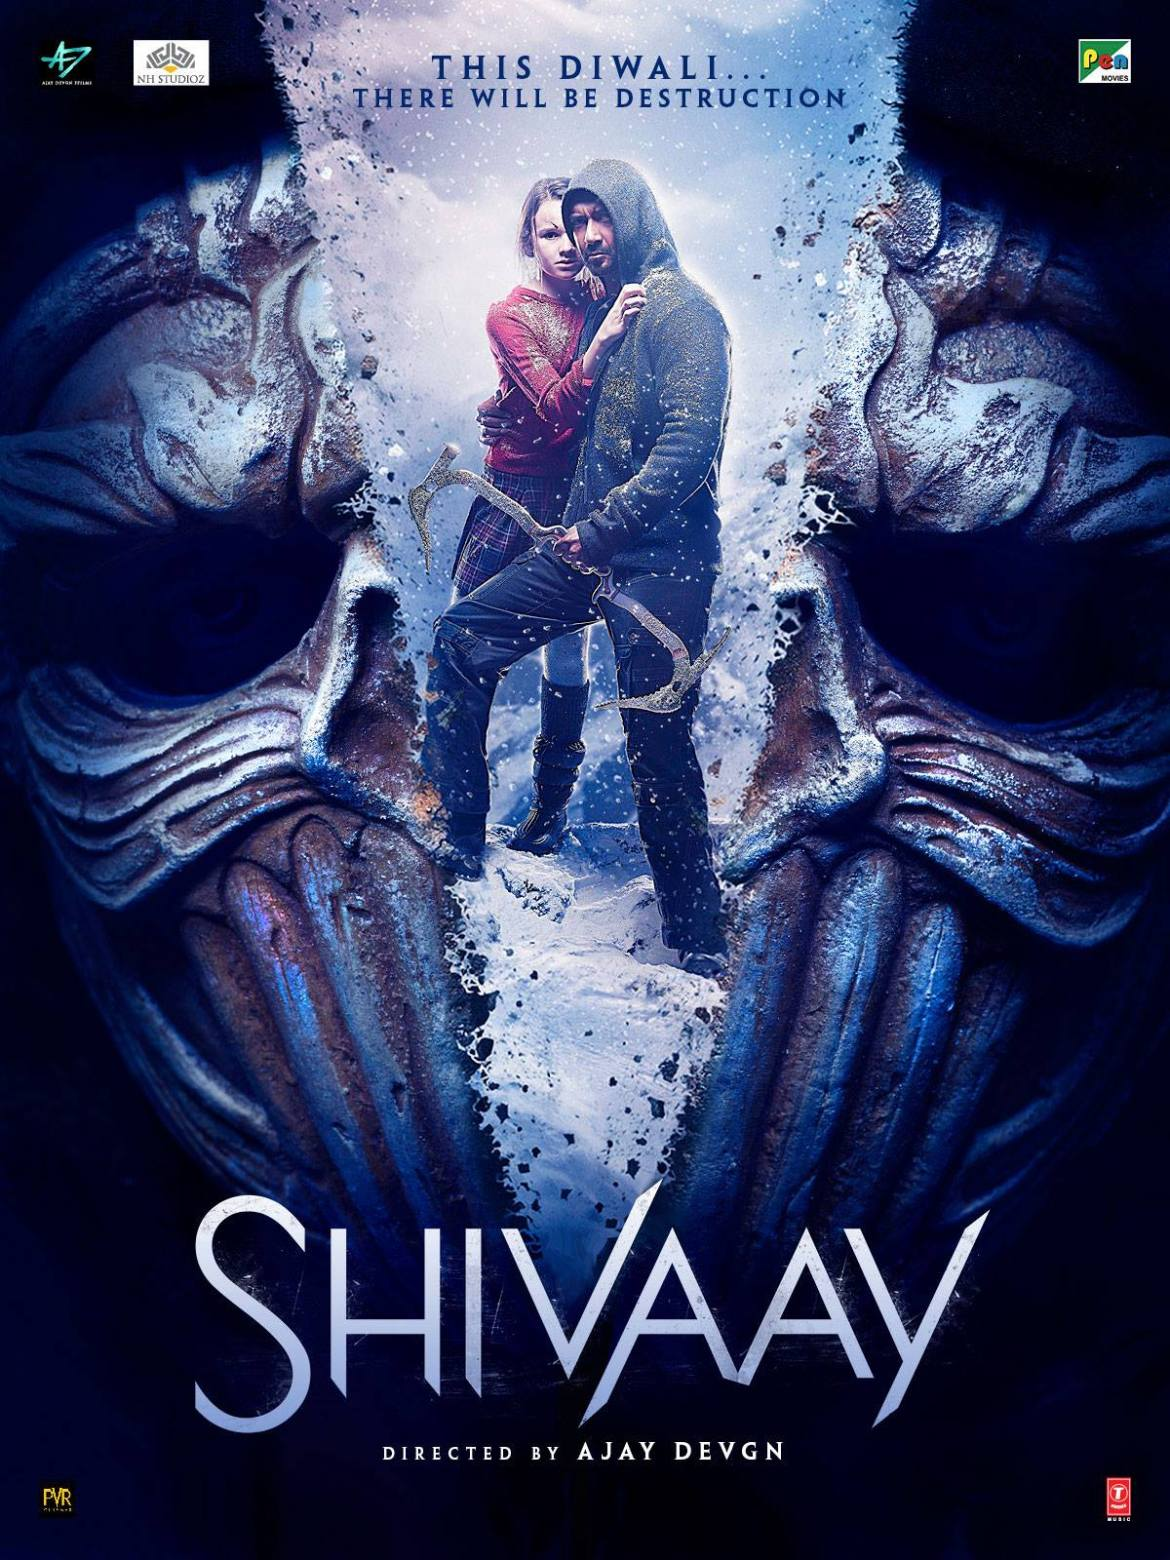 Shivaay Movie Dialogues And Poems (Complete List)